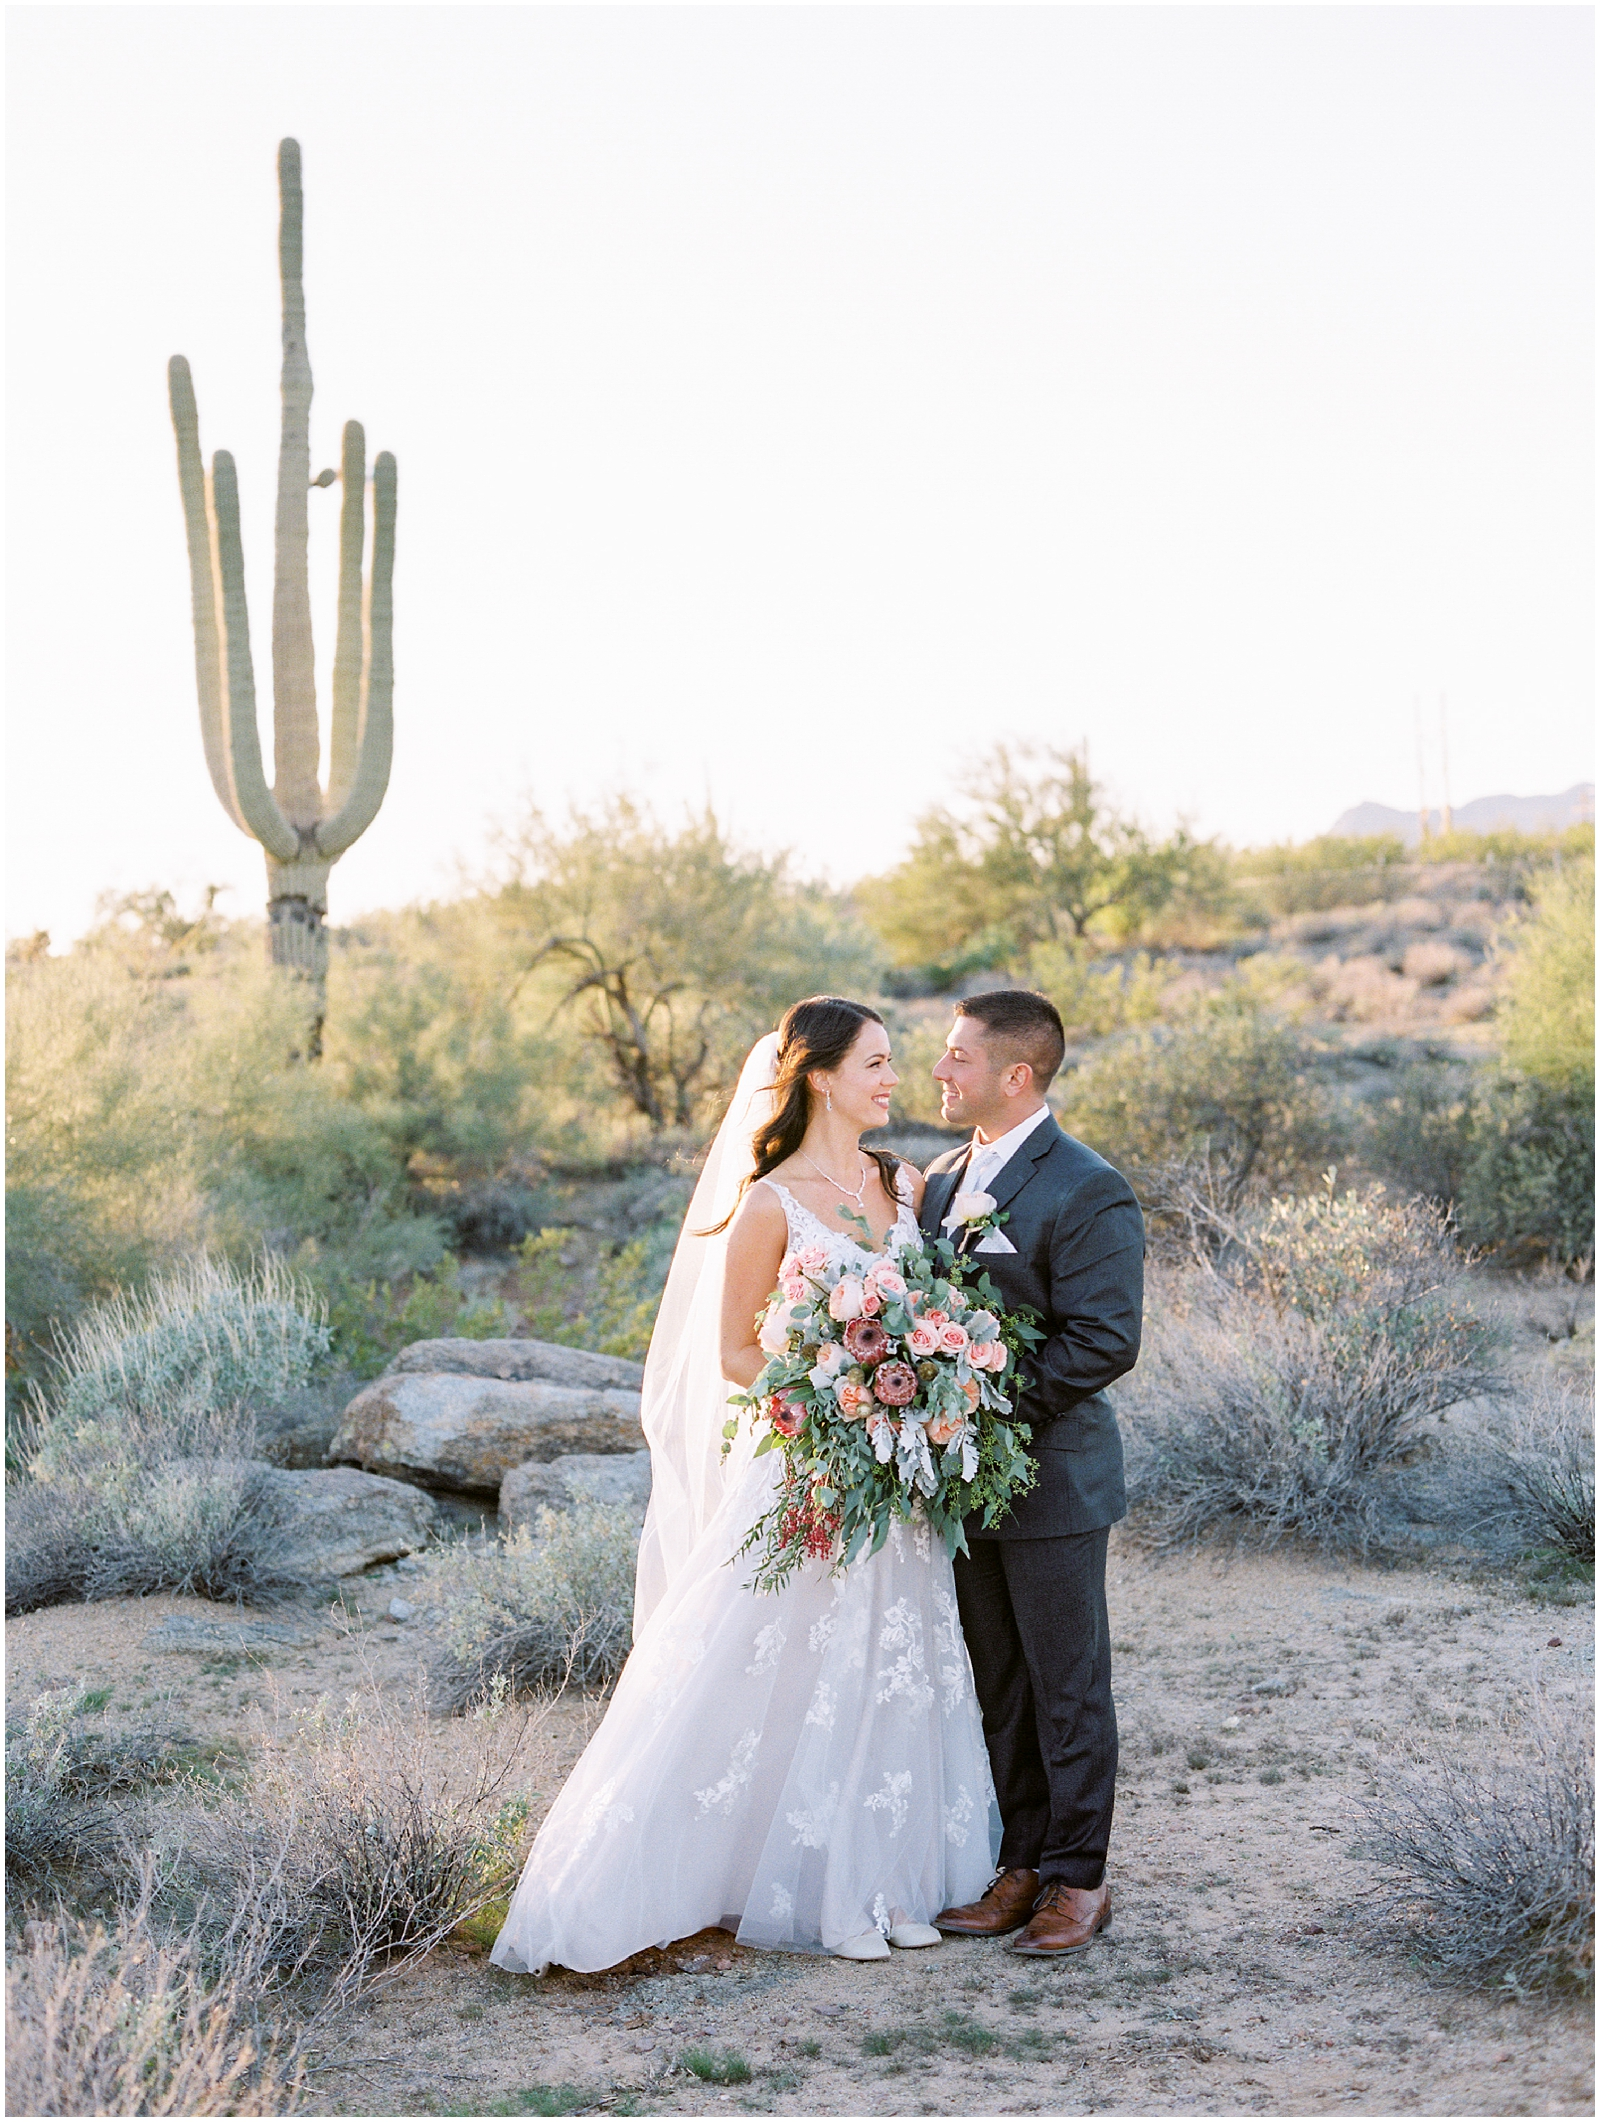 MECAH + MATT PASEO WEDDING